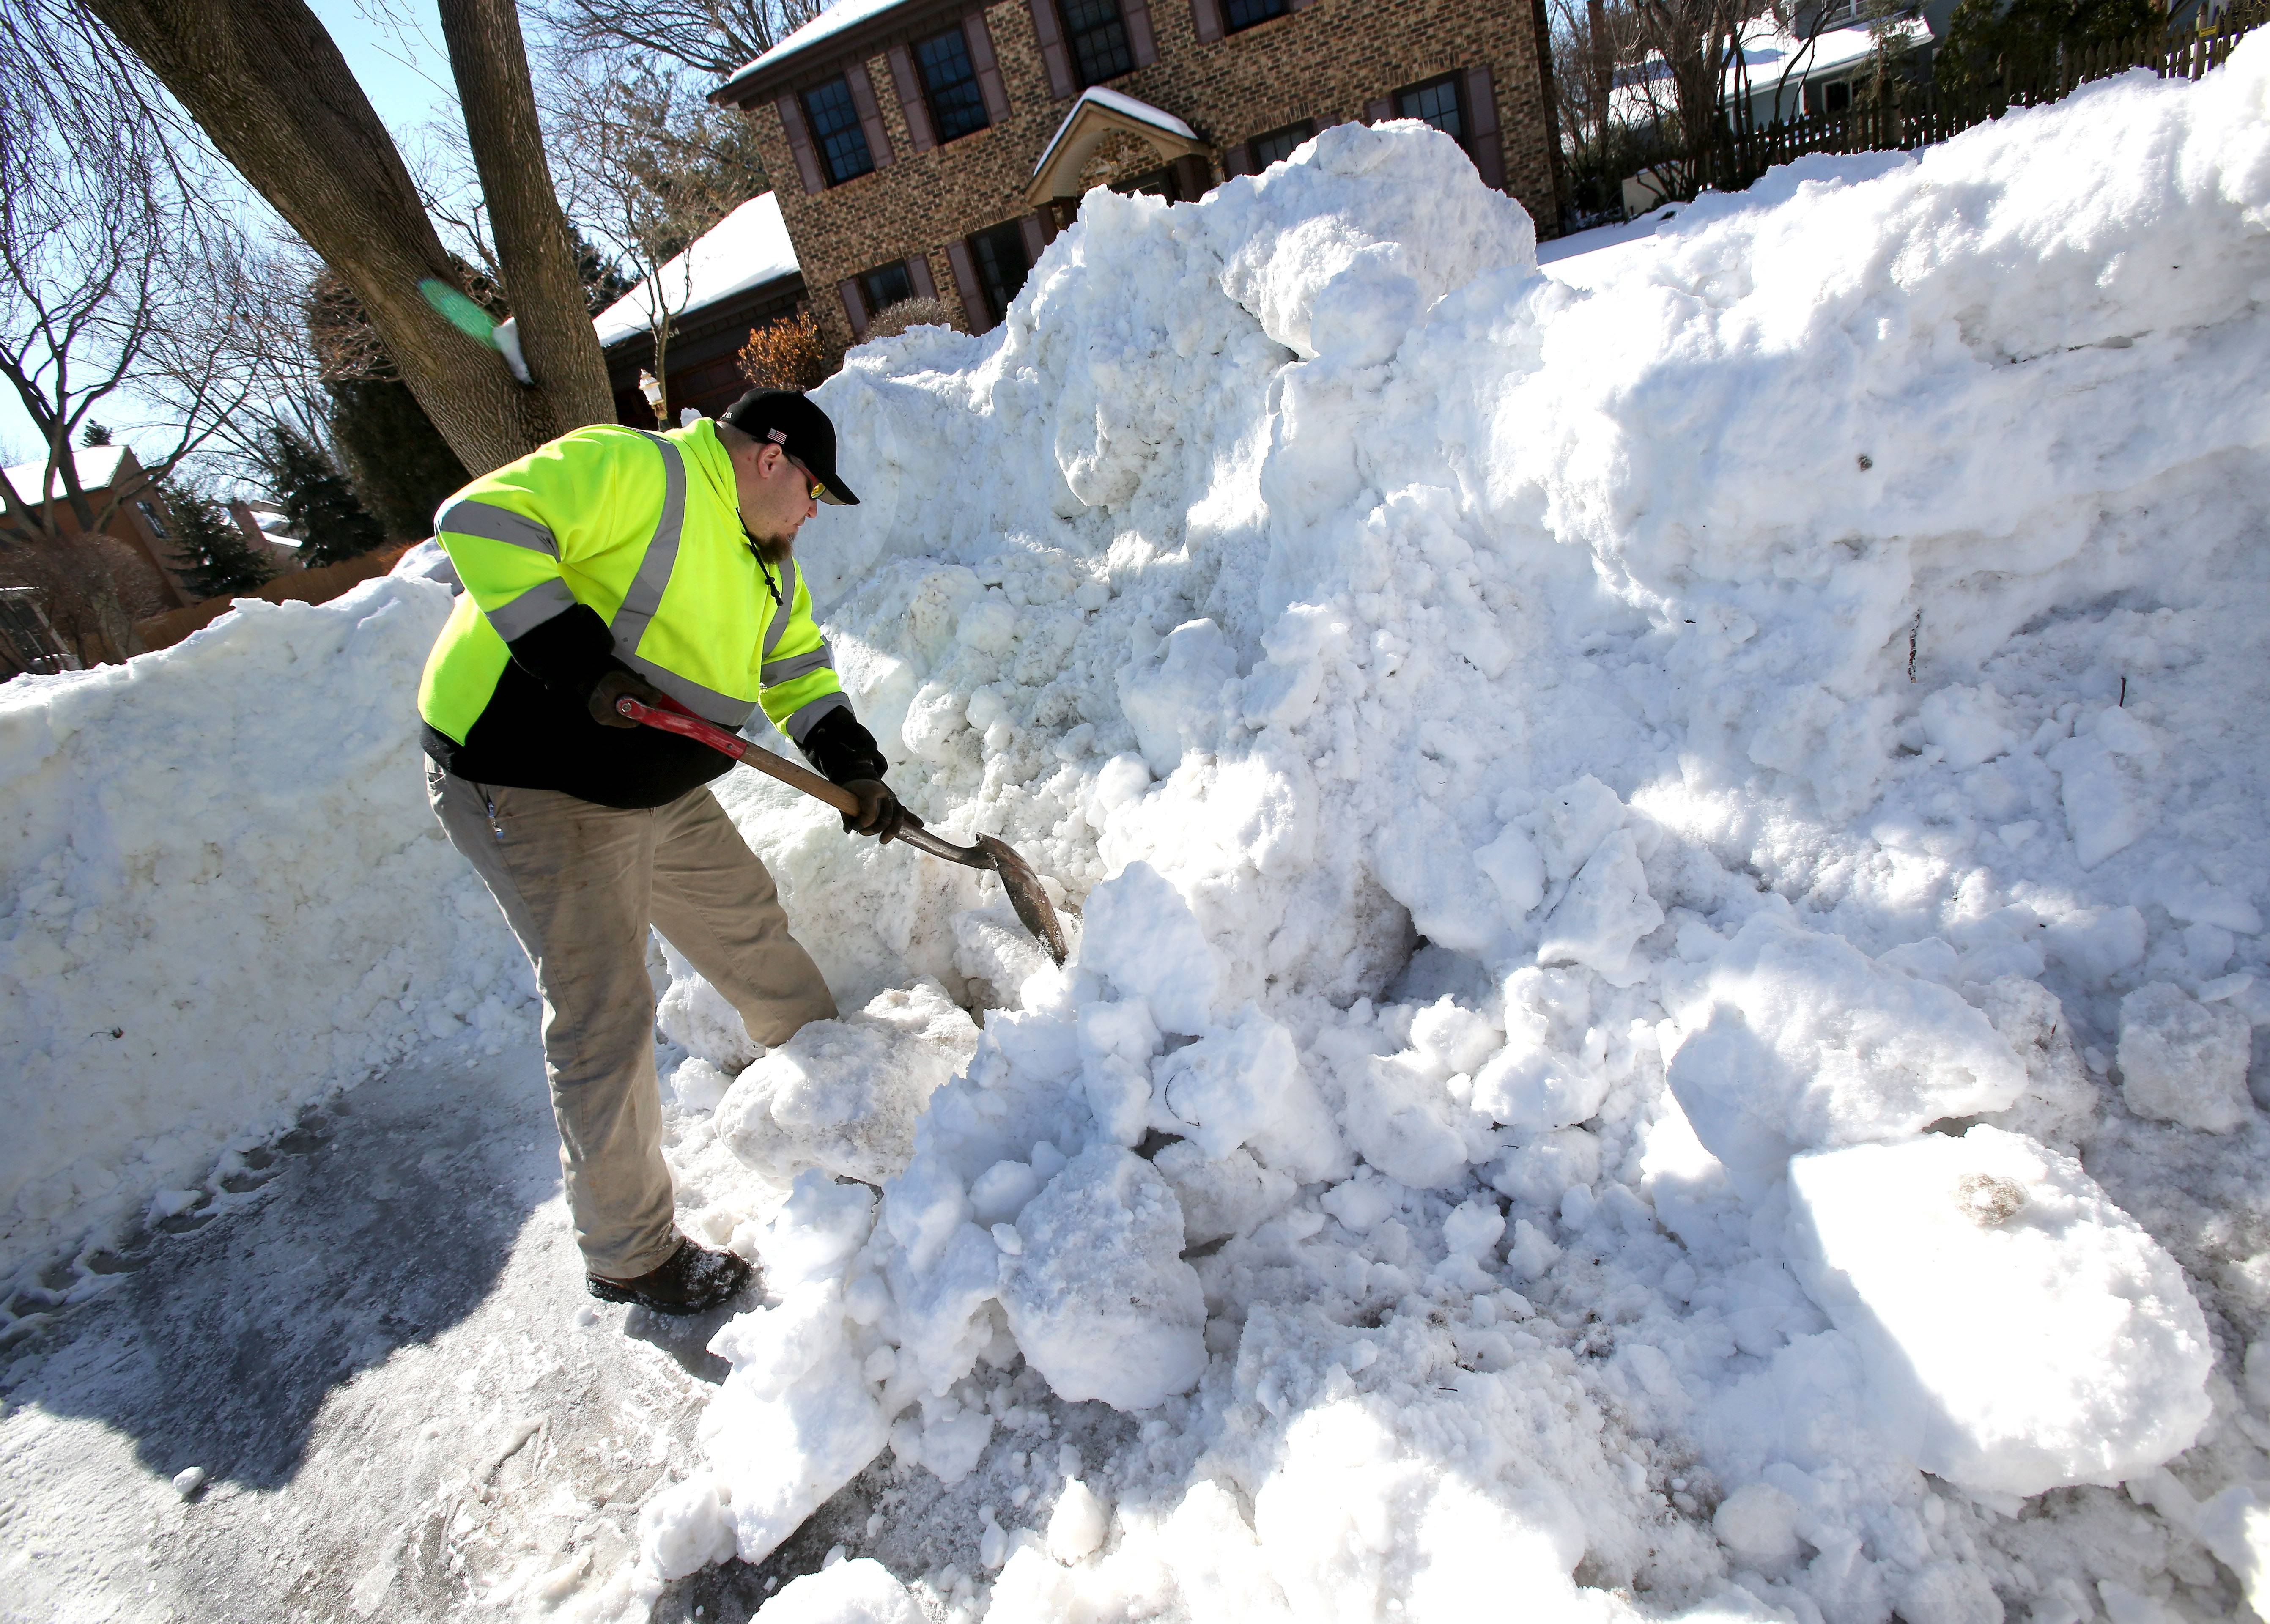 Concerns with possible flooding this week have municipal crews — and many residents — clearing ice and snow from storm drains. Nate Langston with Naperville's public works department was working Wednesday along Palm Court.